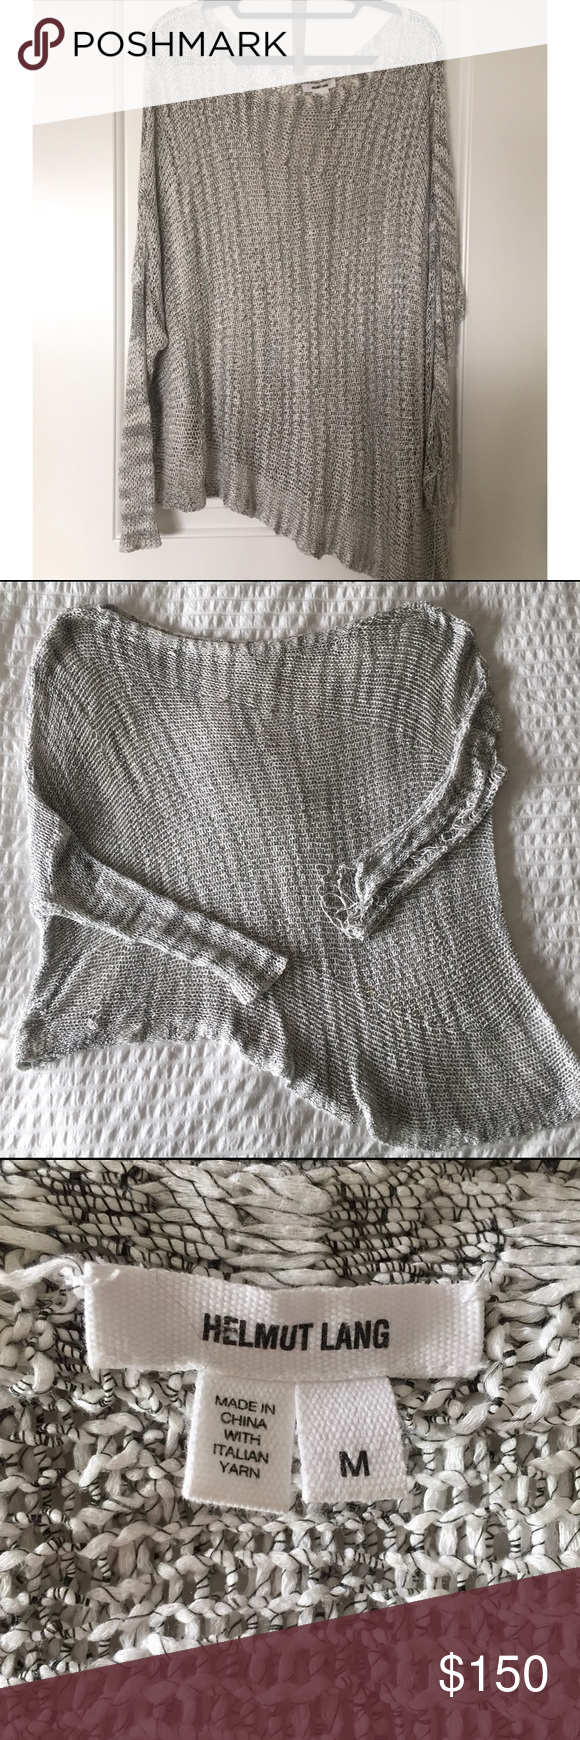 Helmut Lang Oversized Knit Sweater Size Medium Distressed Gray Sweater, So cute I just have to many that look similar! Helmut Lang Sweaters